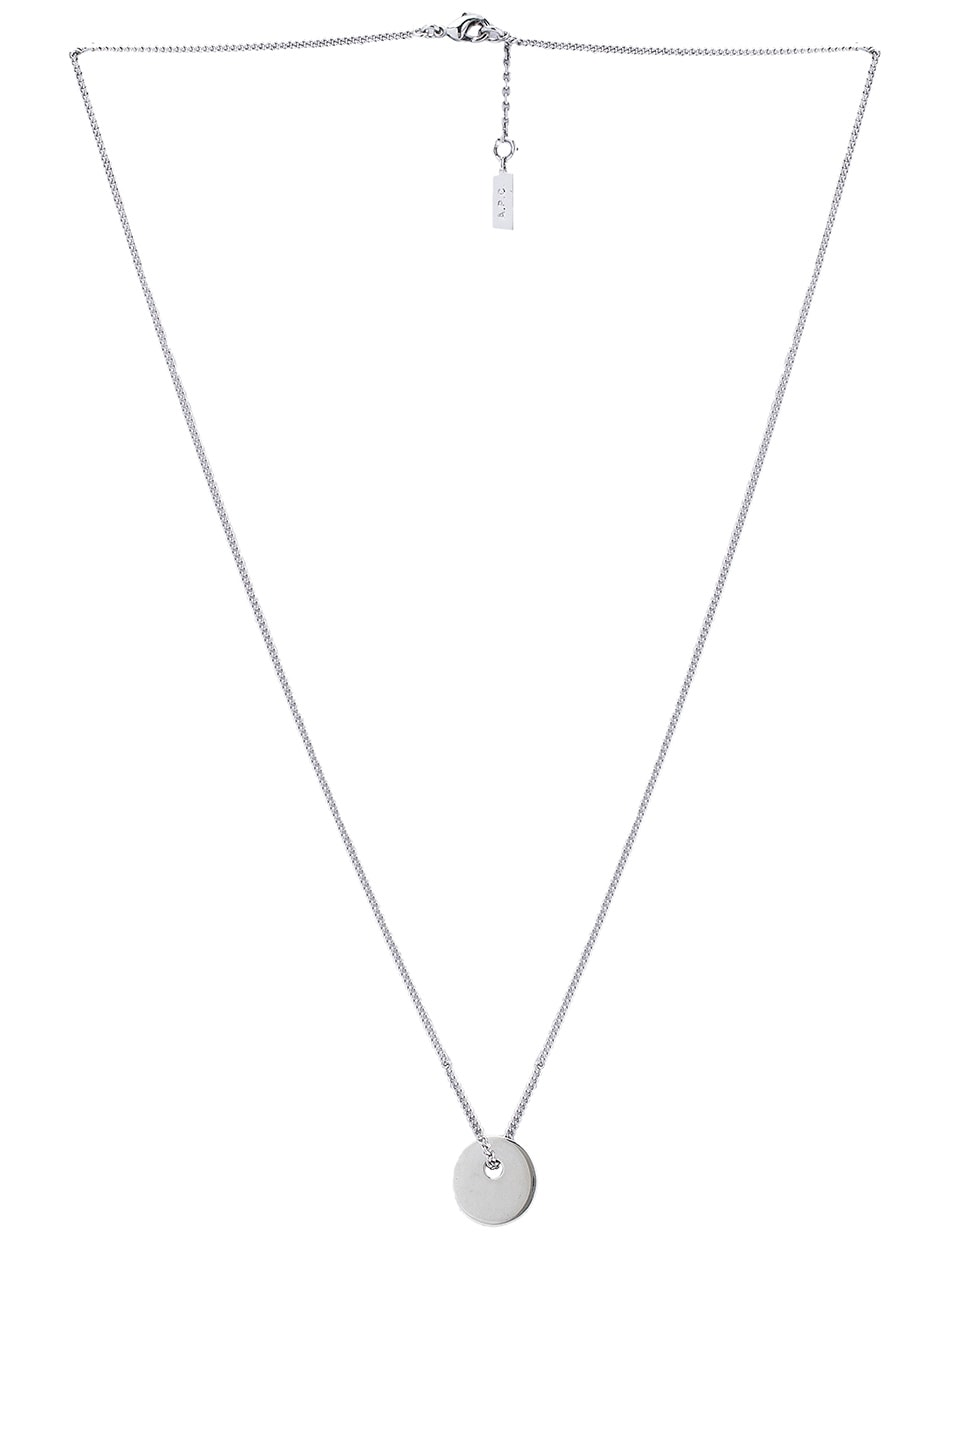 fresh jewelry apc pepper rob home collier product accessories necklace silver